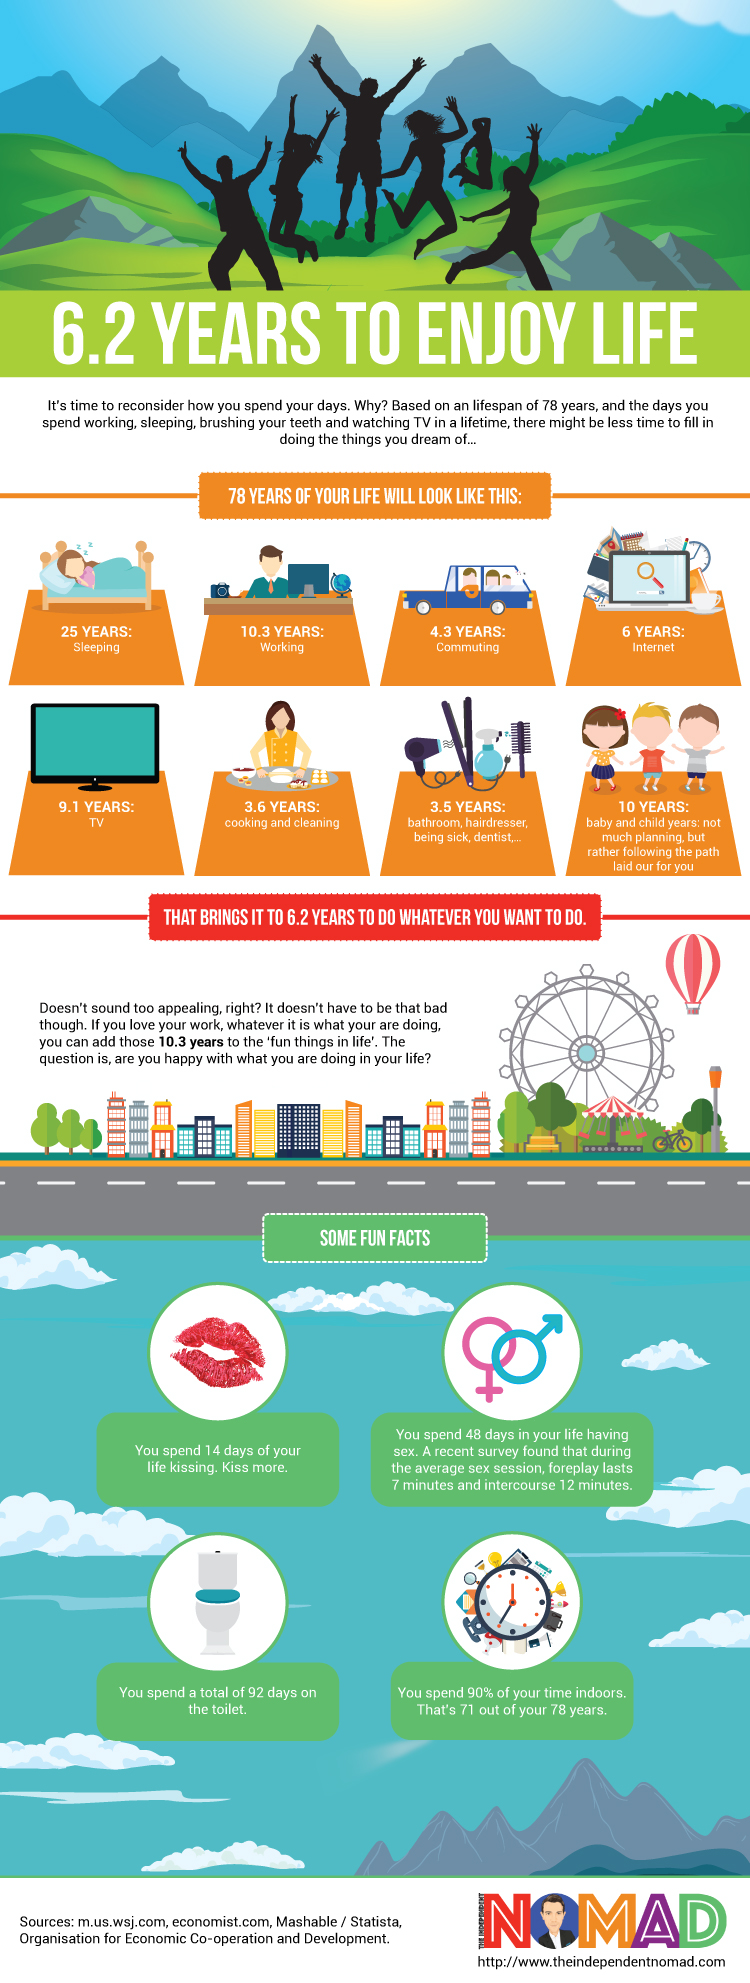 TheIndependentNomad Infographic 6.2 years